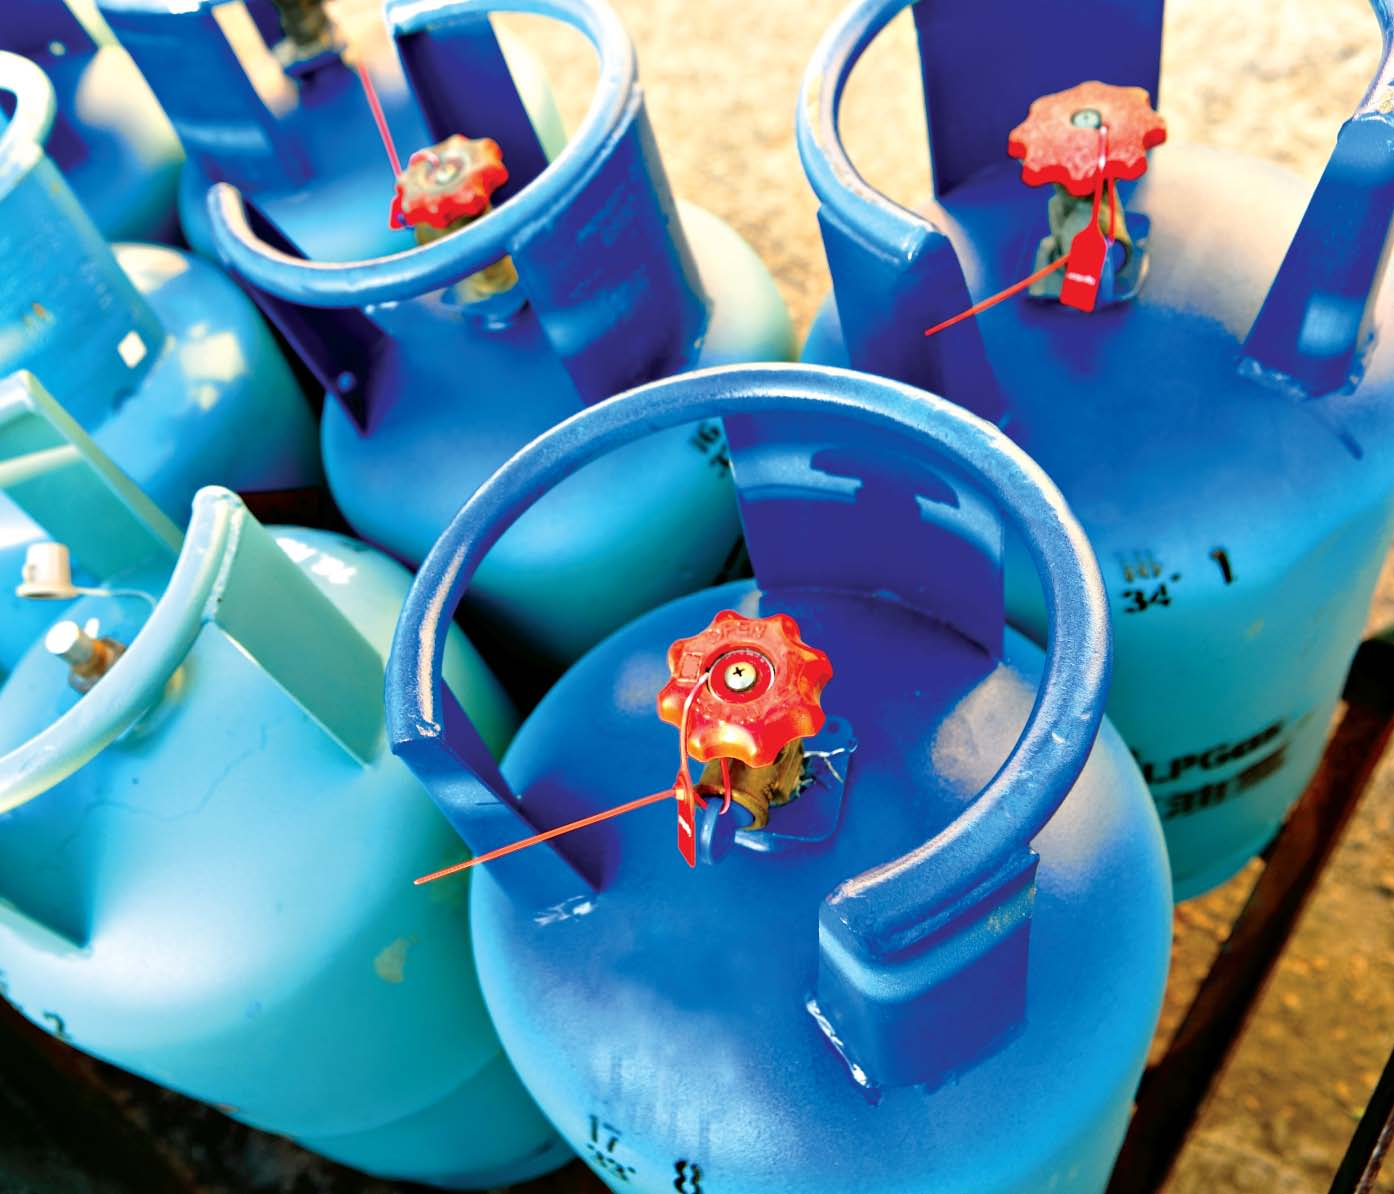 ogra increases lpg prices for july